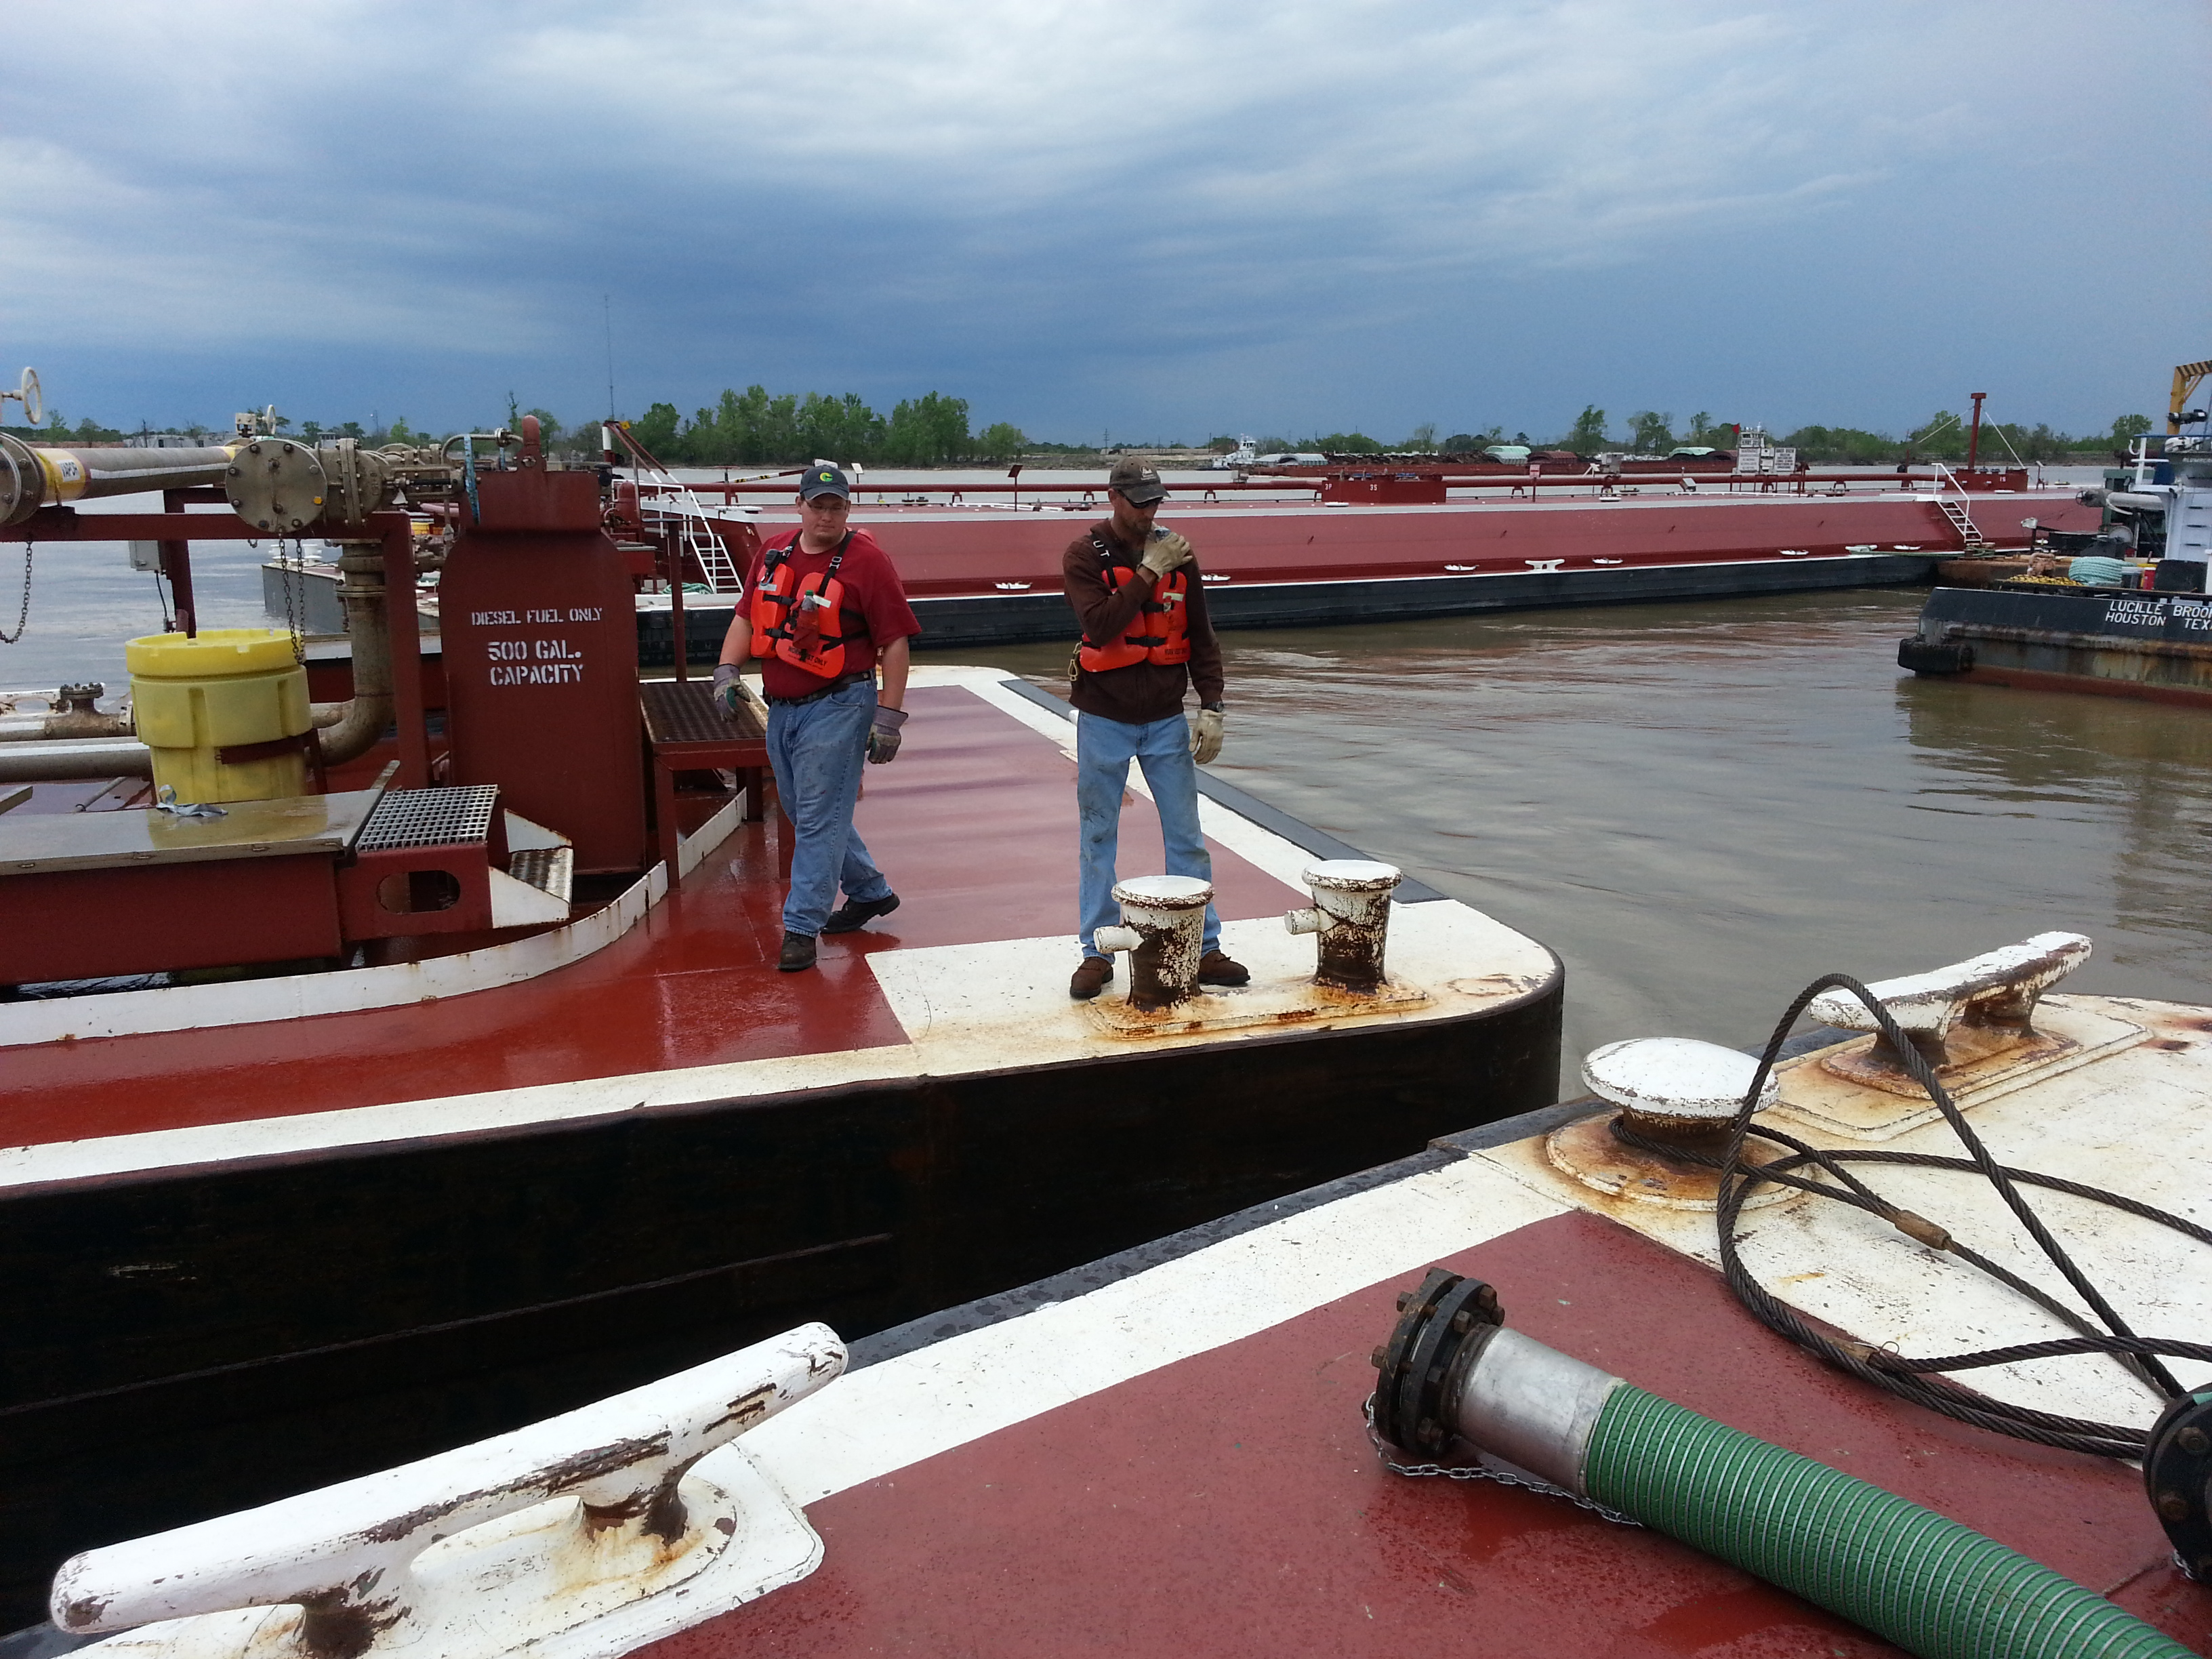 Deckhands pulling a barge into dock